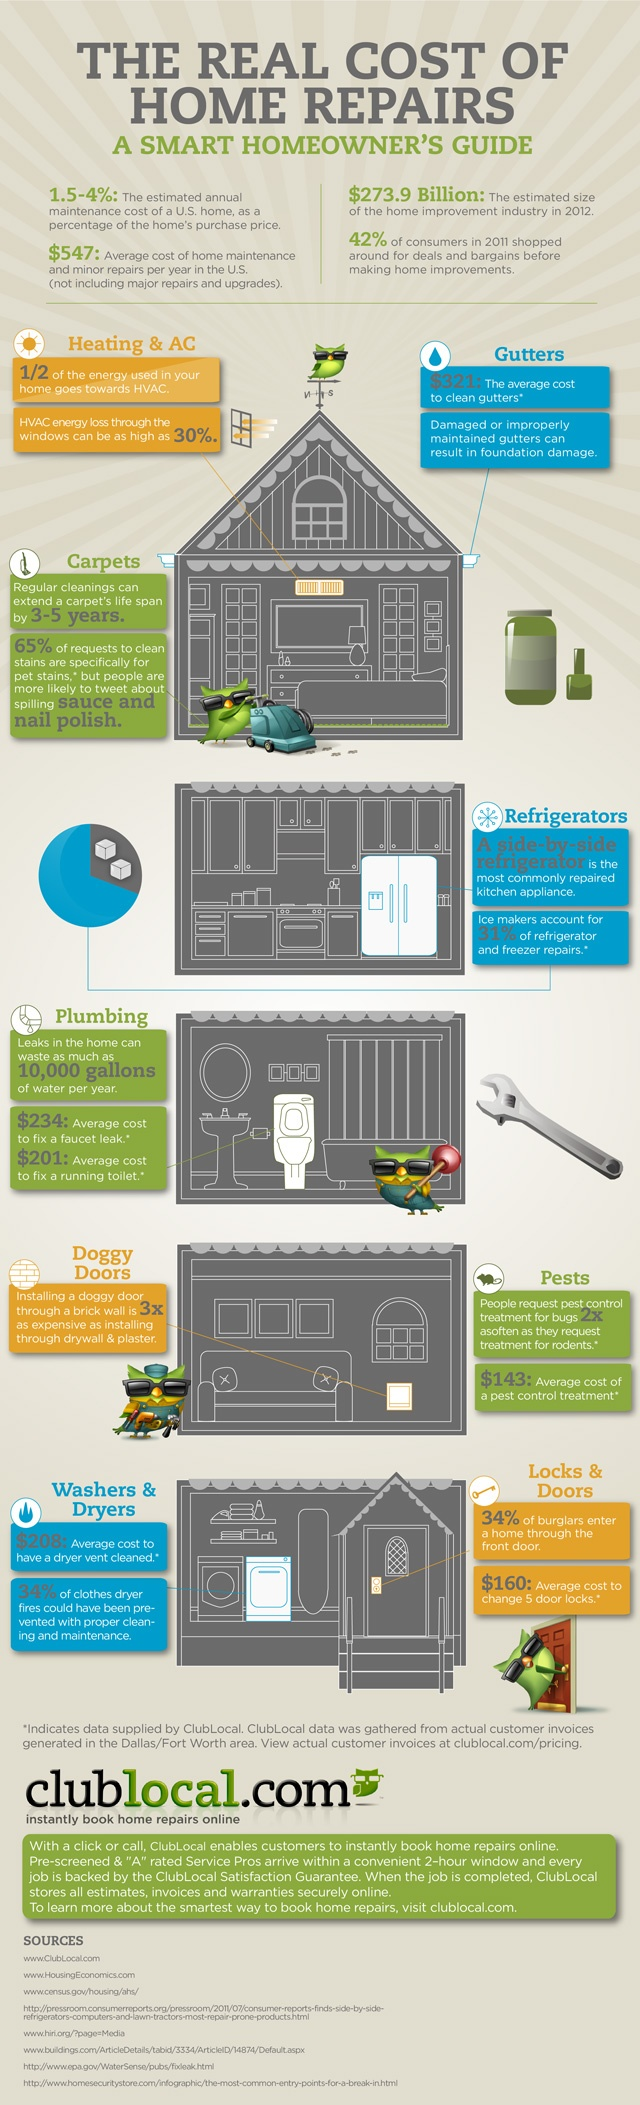 The Real Cost of Home Repairs: A Smart Homeowner's Guide